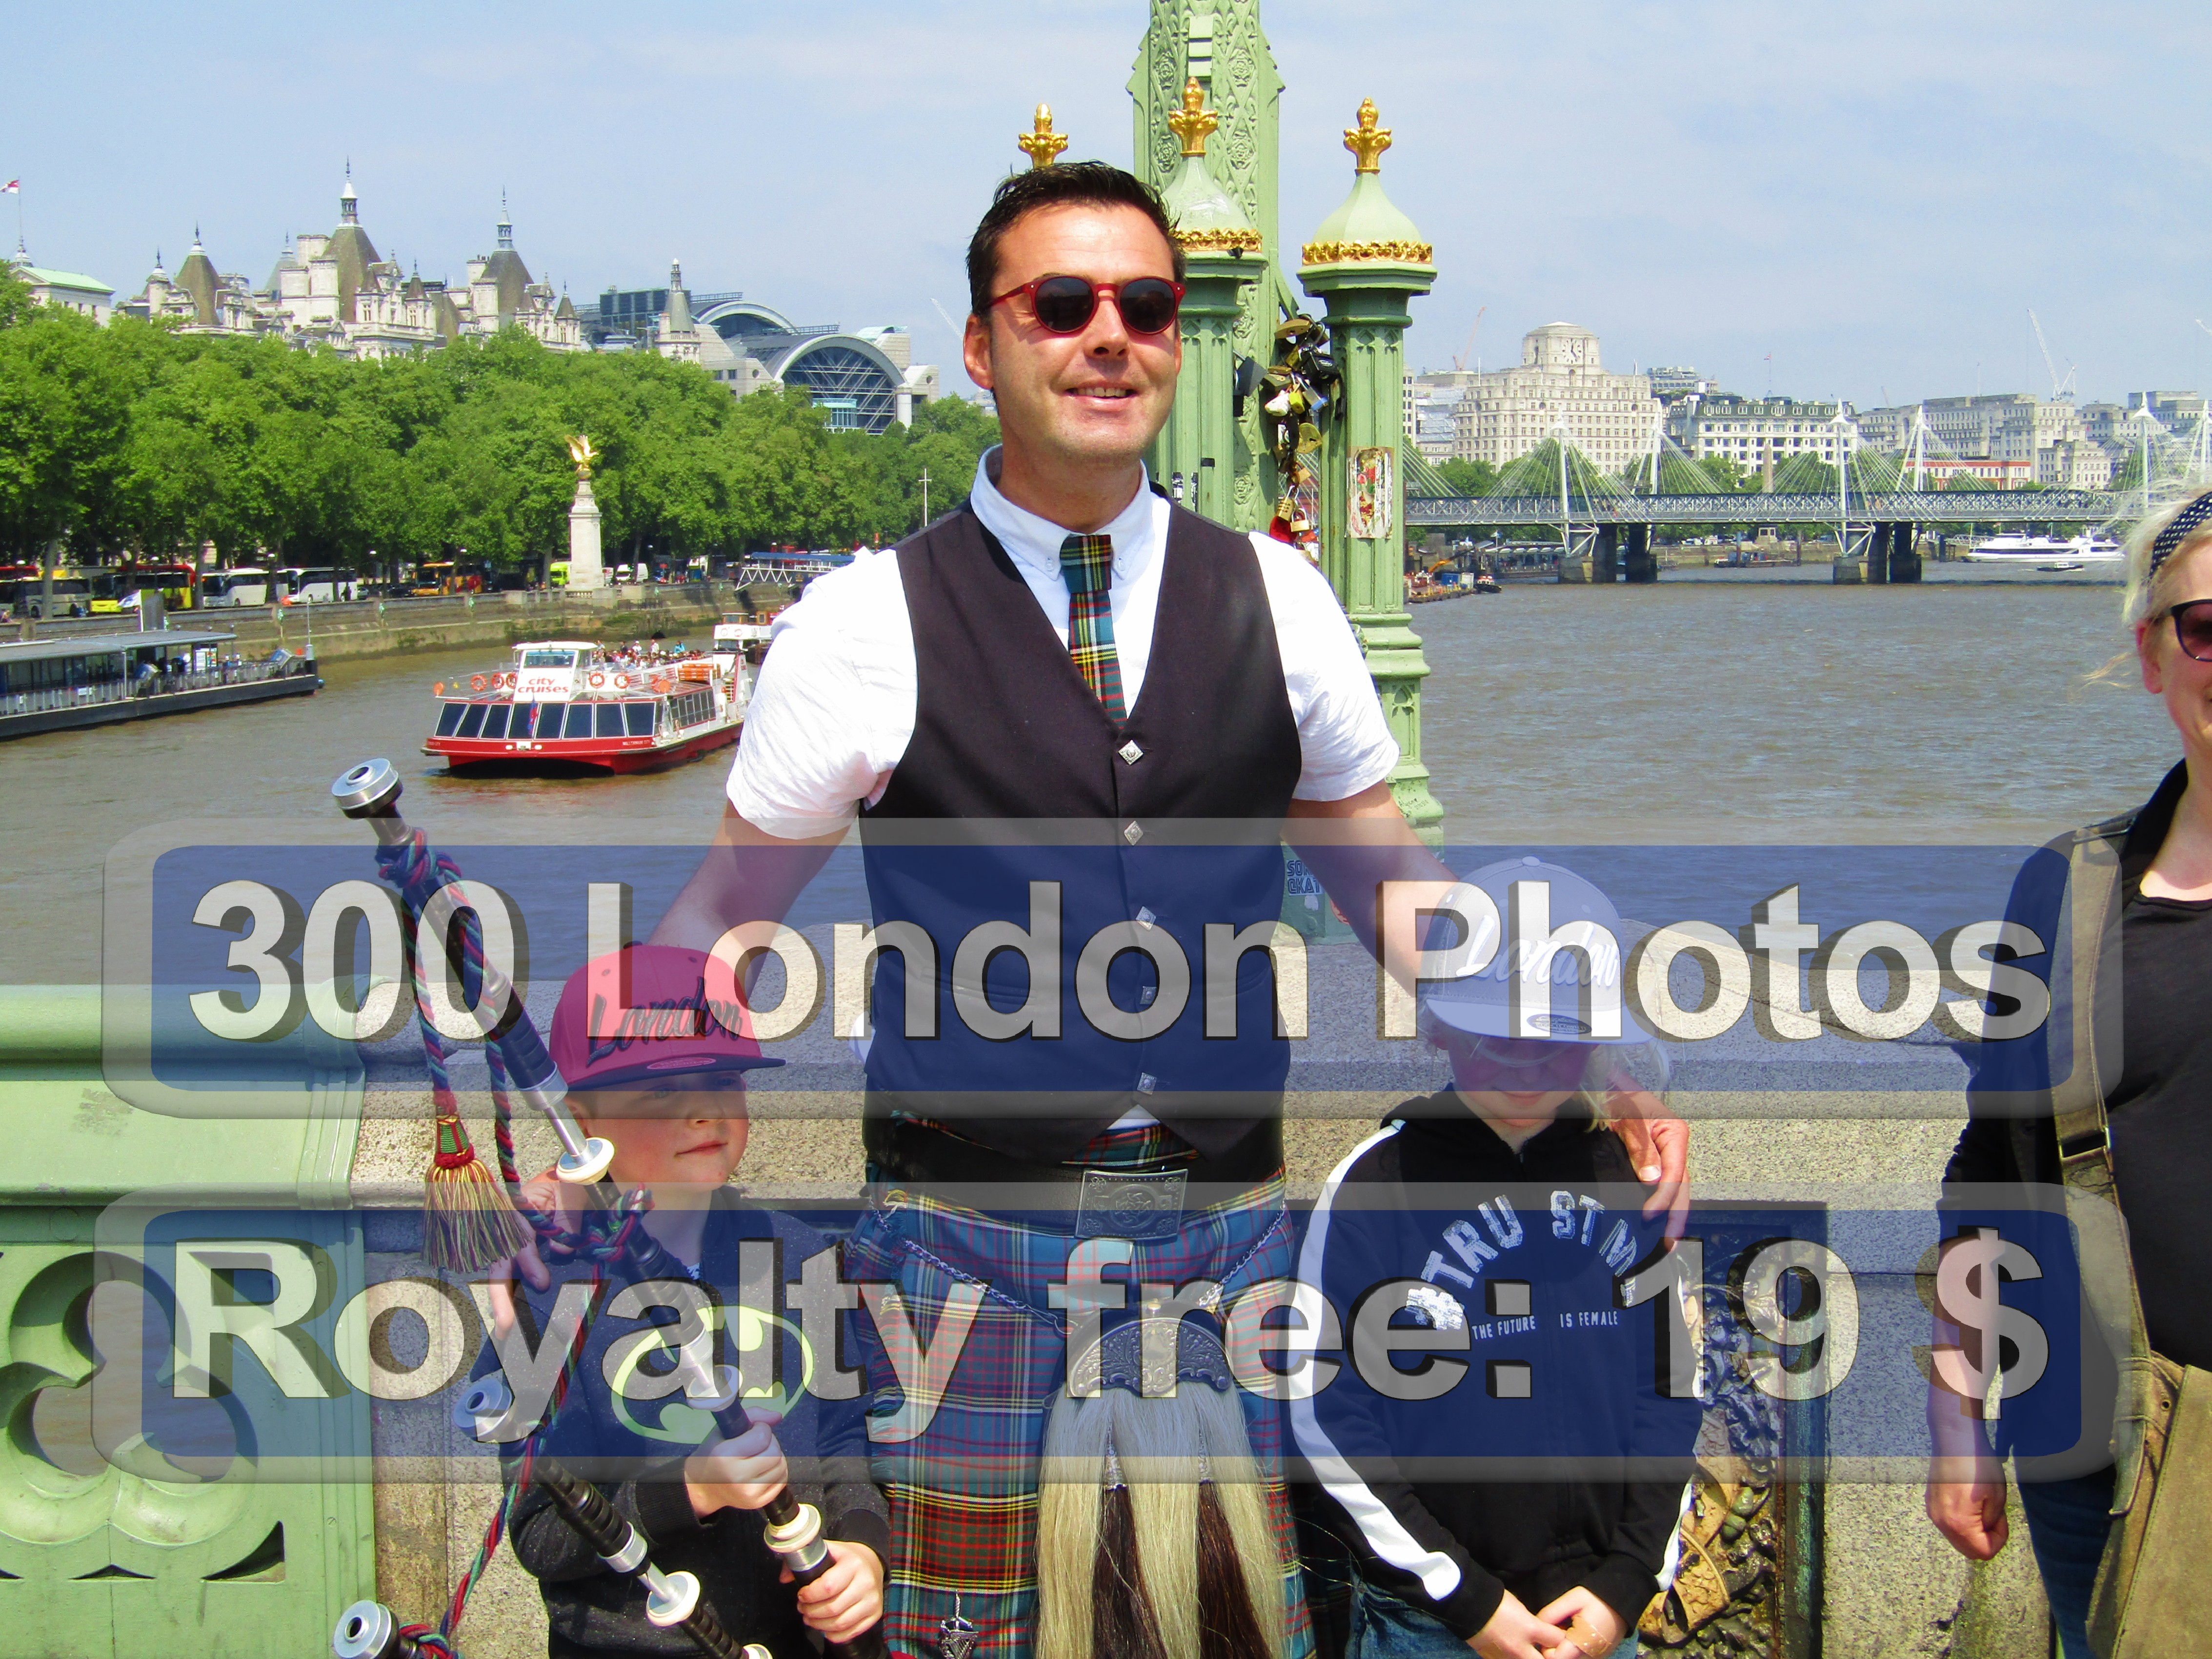 London Photo Routes